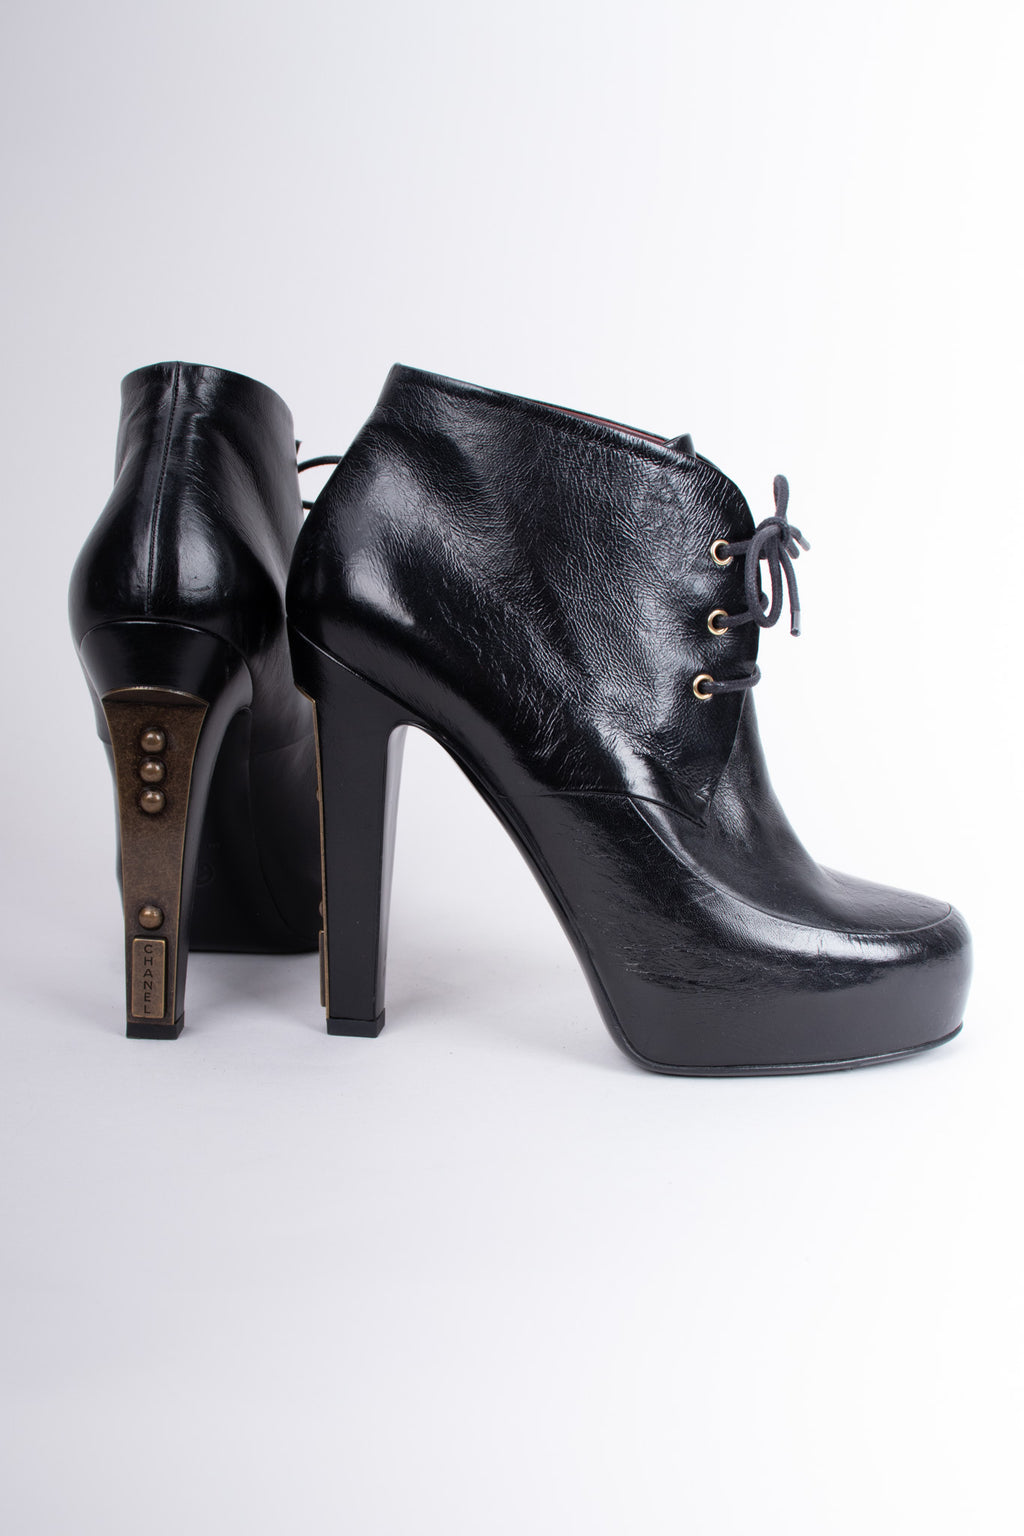 Chanel Lace-Up Platform Steampunk Ankle Boots